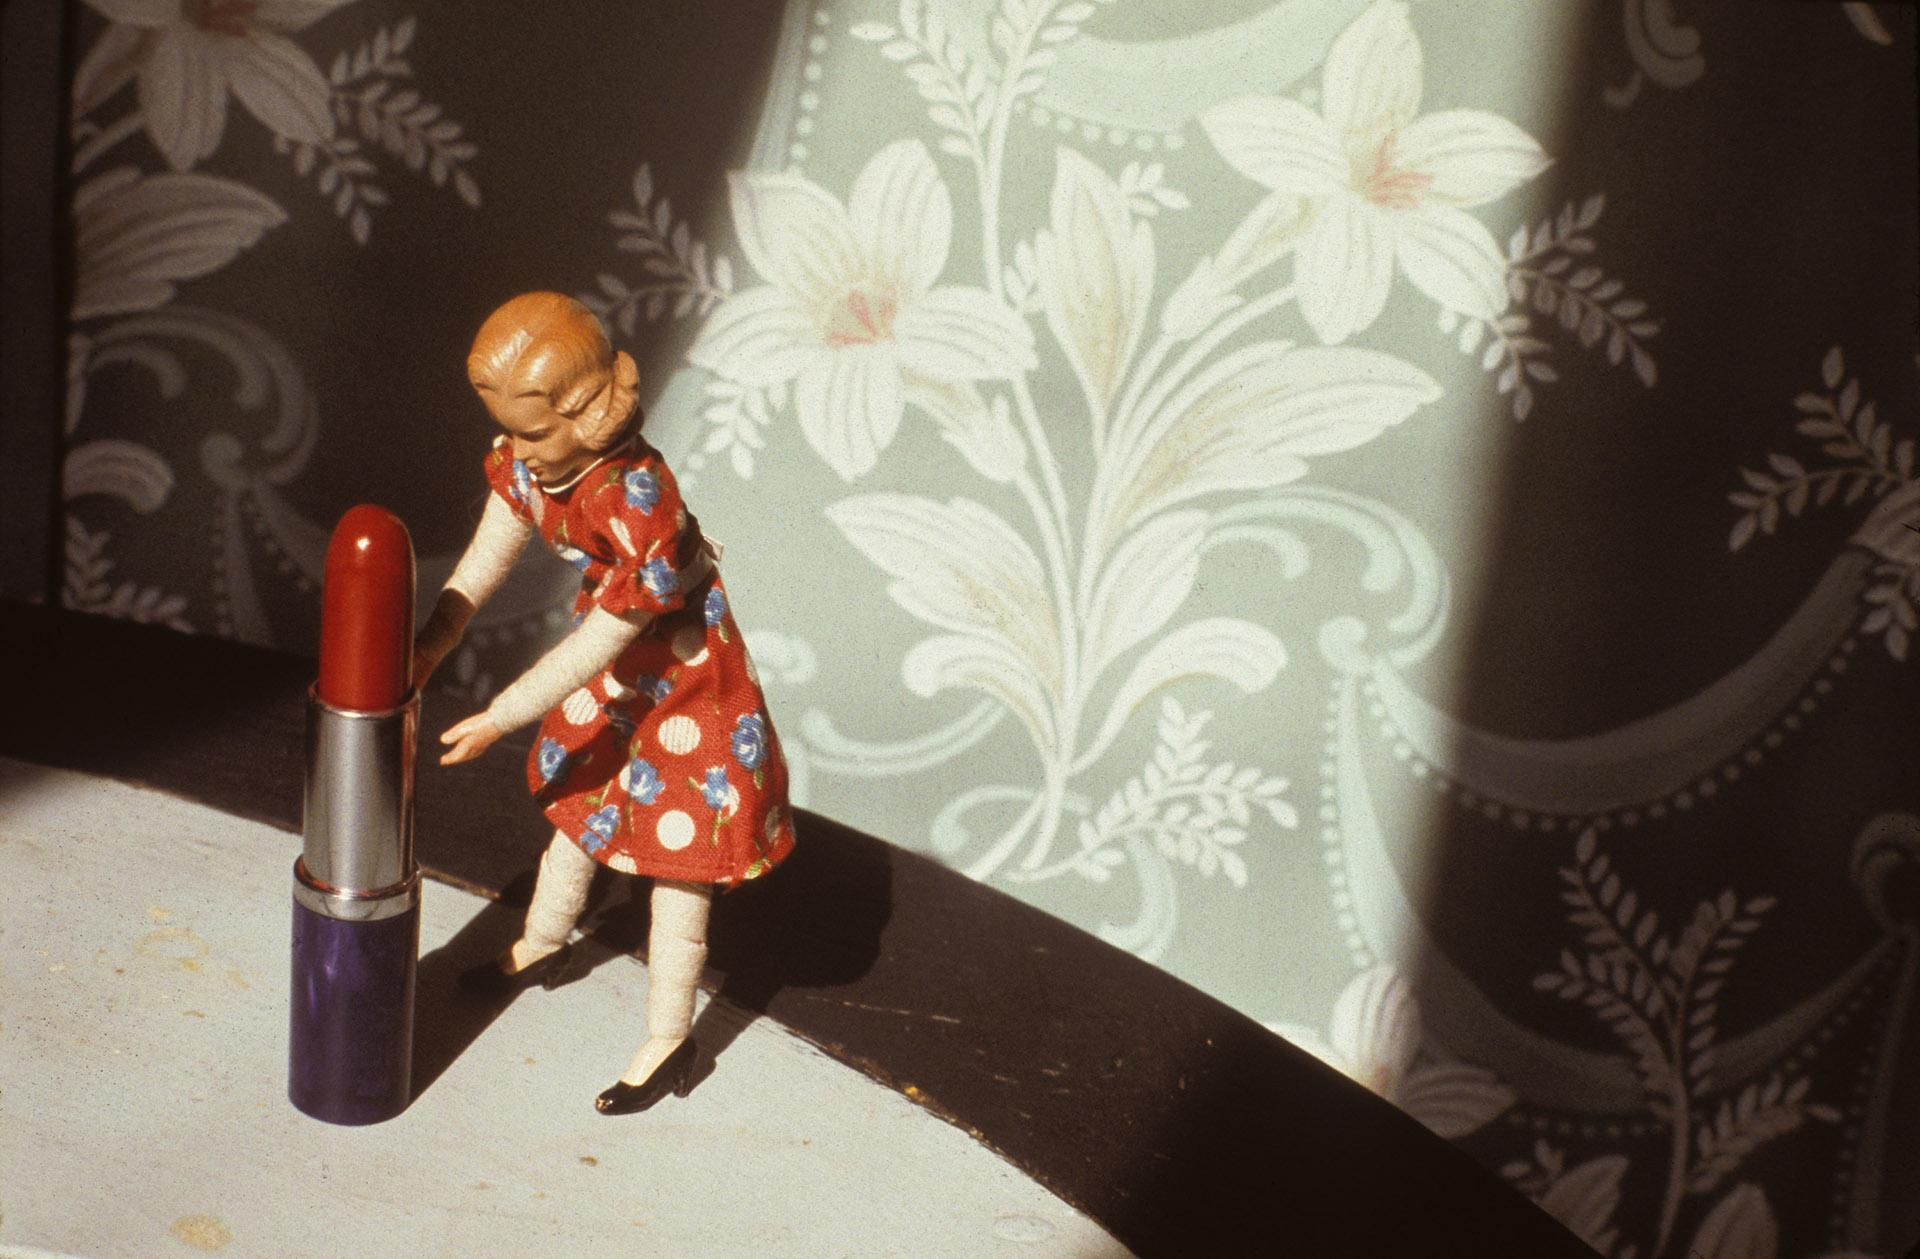 Laurie Simmons, Pushing Lipstick (Spotlight), 1979. Photo: © Laurie Simmons, courtesy of the artist and Salon 94.